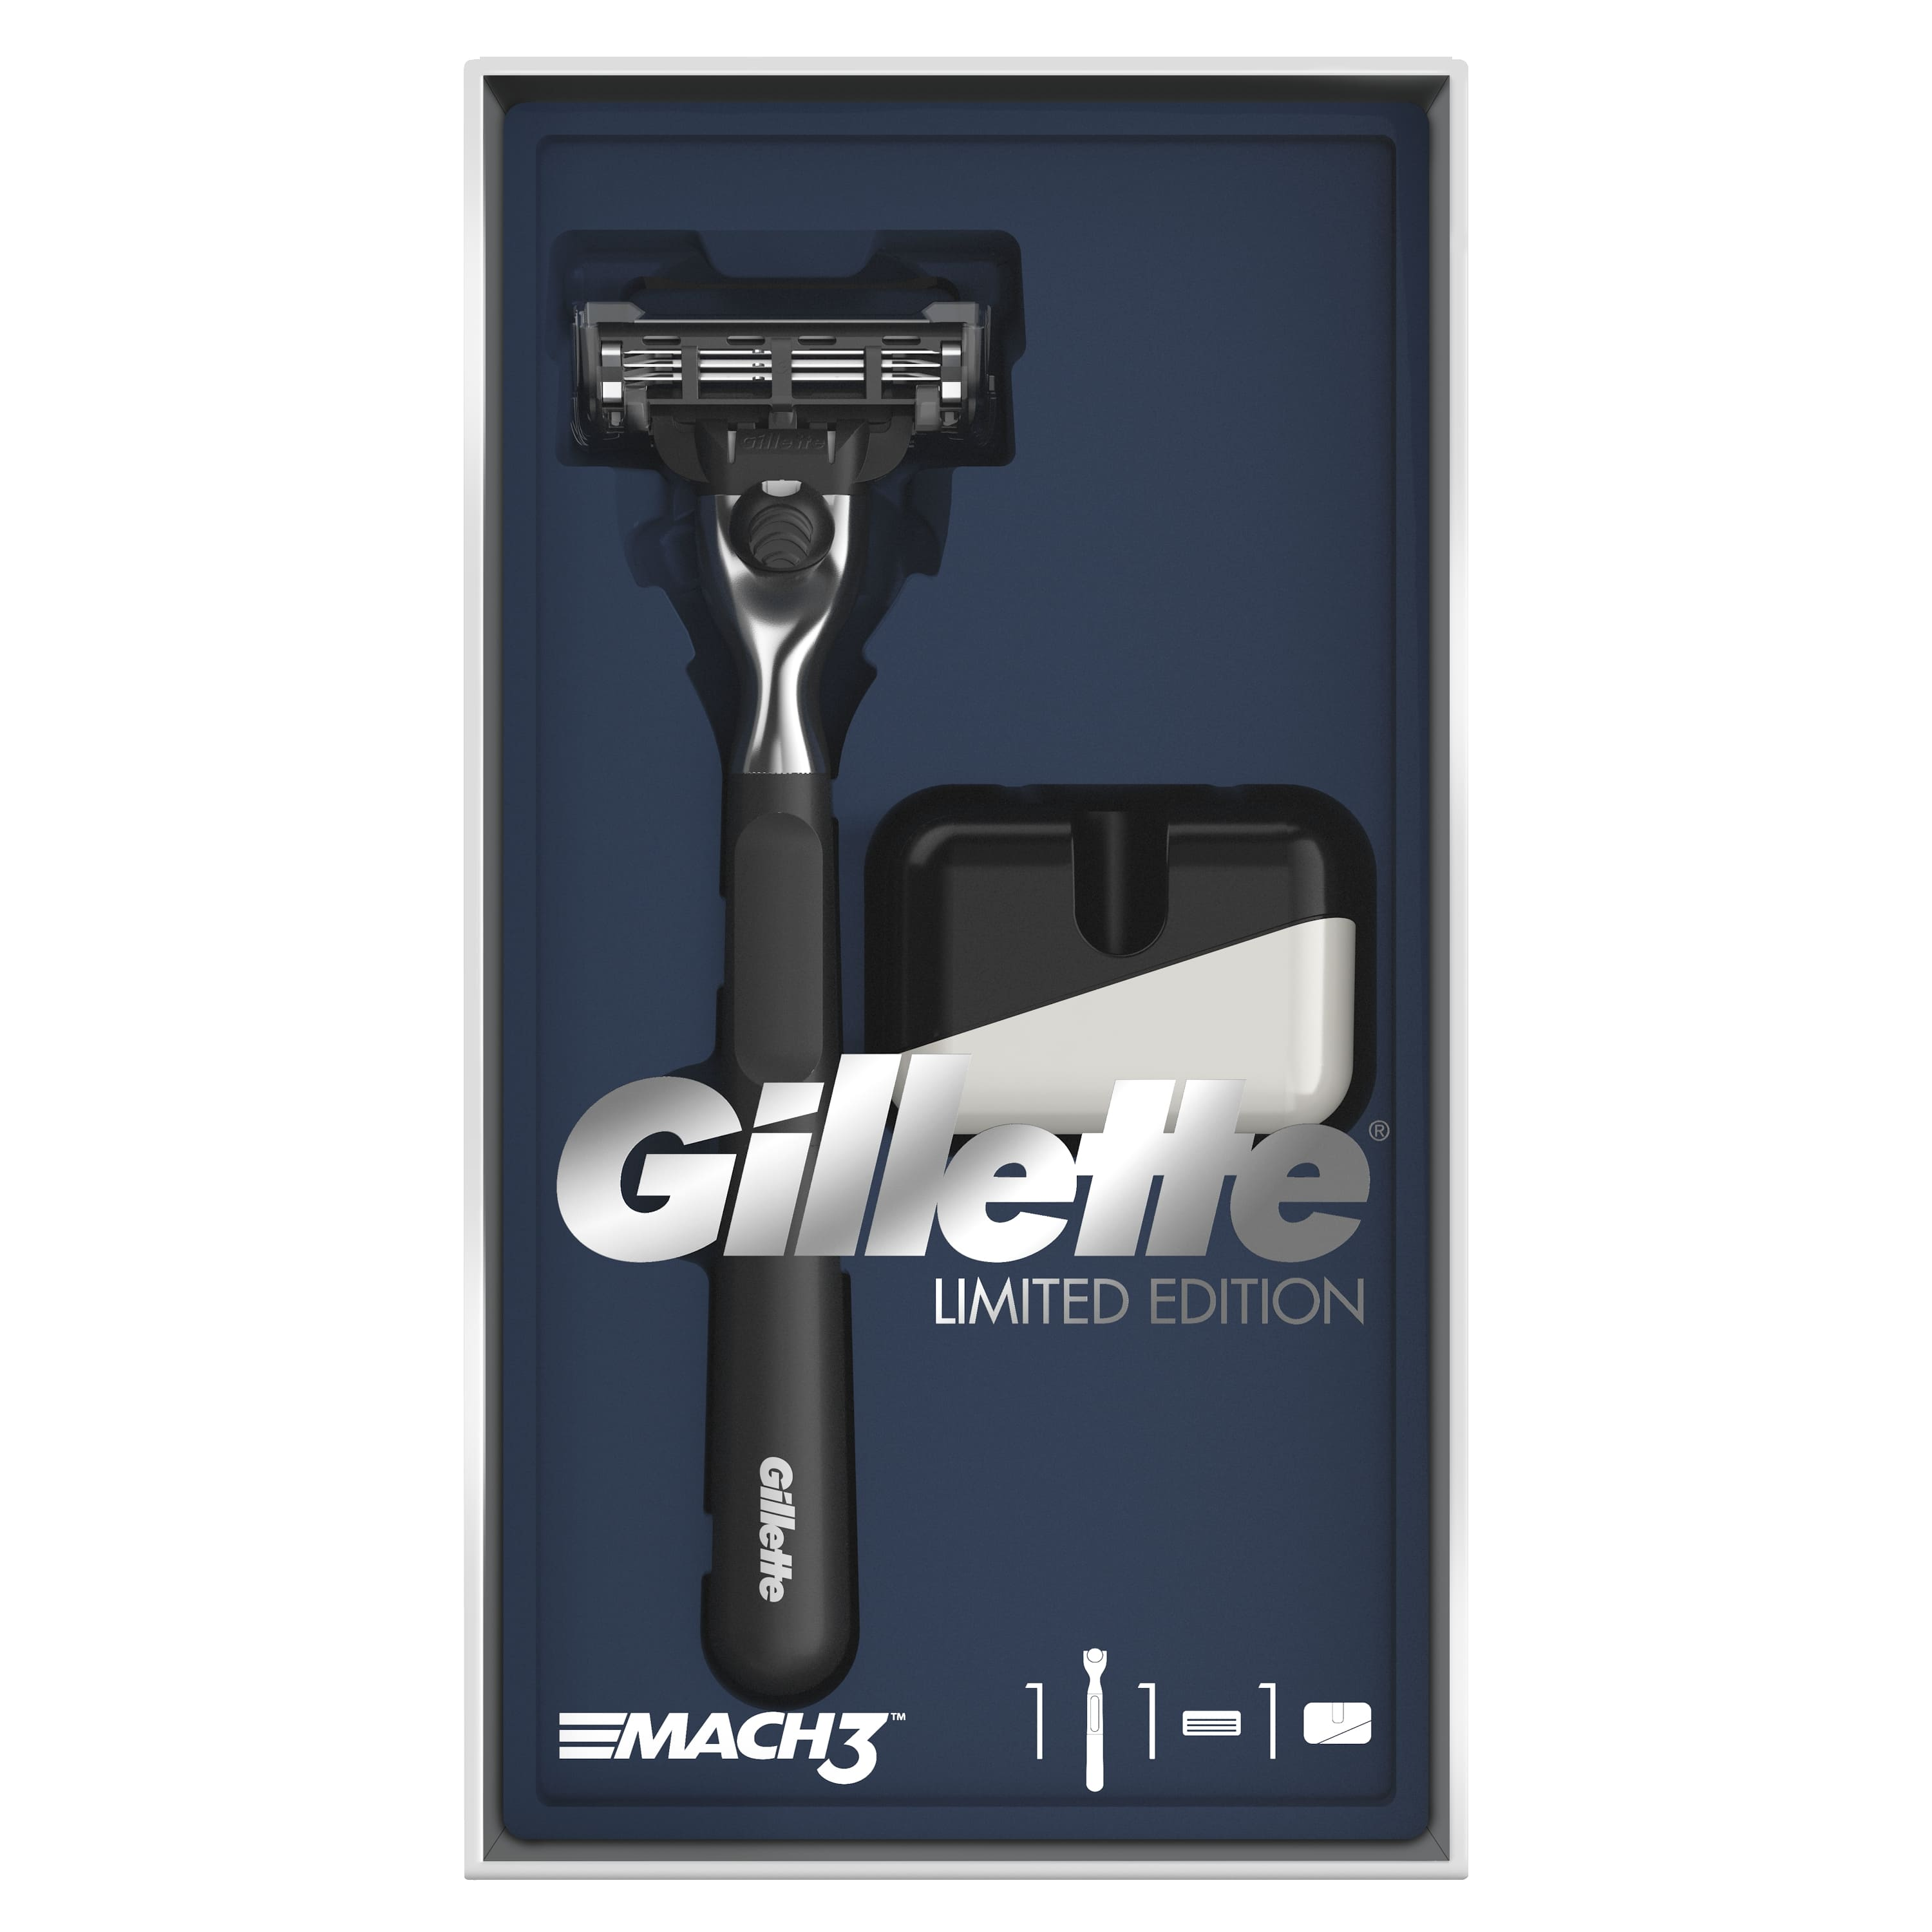 Gillette Mach3 Gift Set Limited Edition with Black Handle (Razor with 1 Interchangeable Cassette + Stand) цена